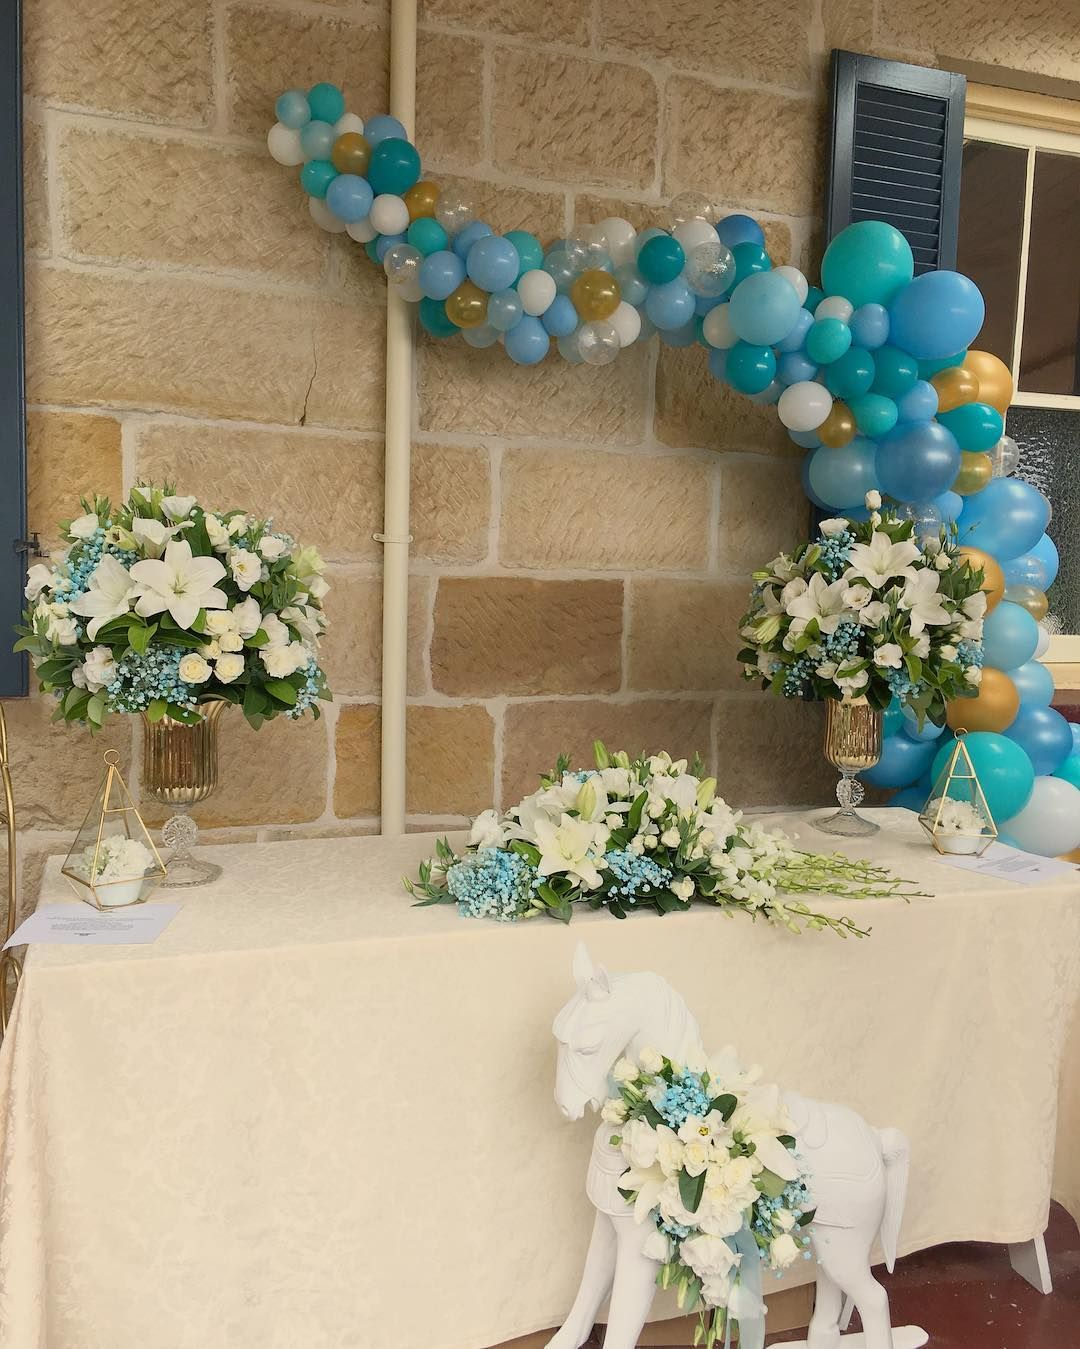 Blues white and gold balloon decorations for a baby boy Christening